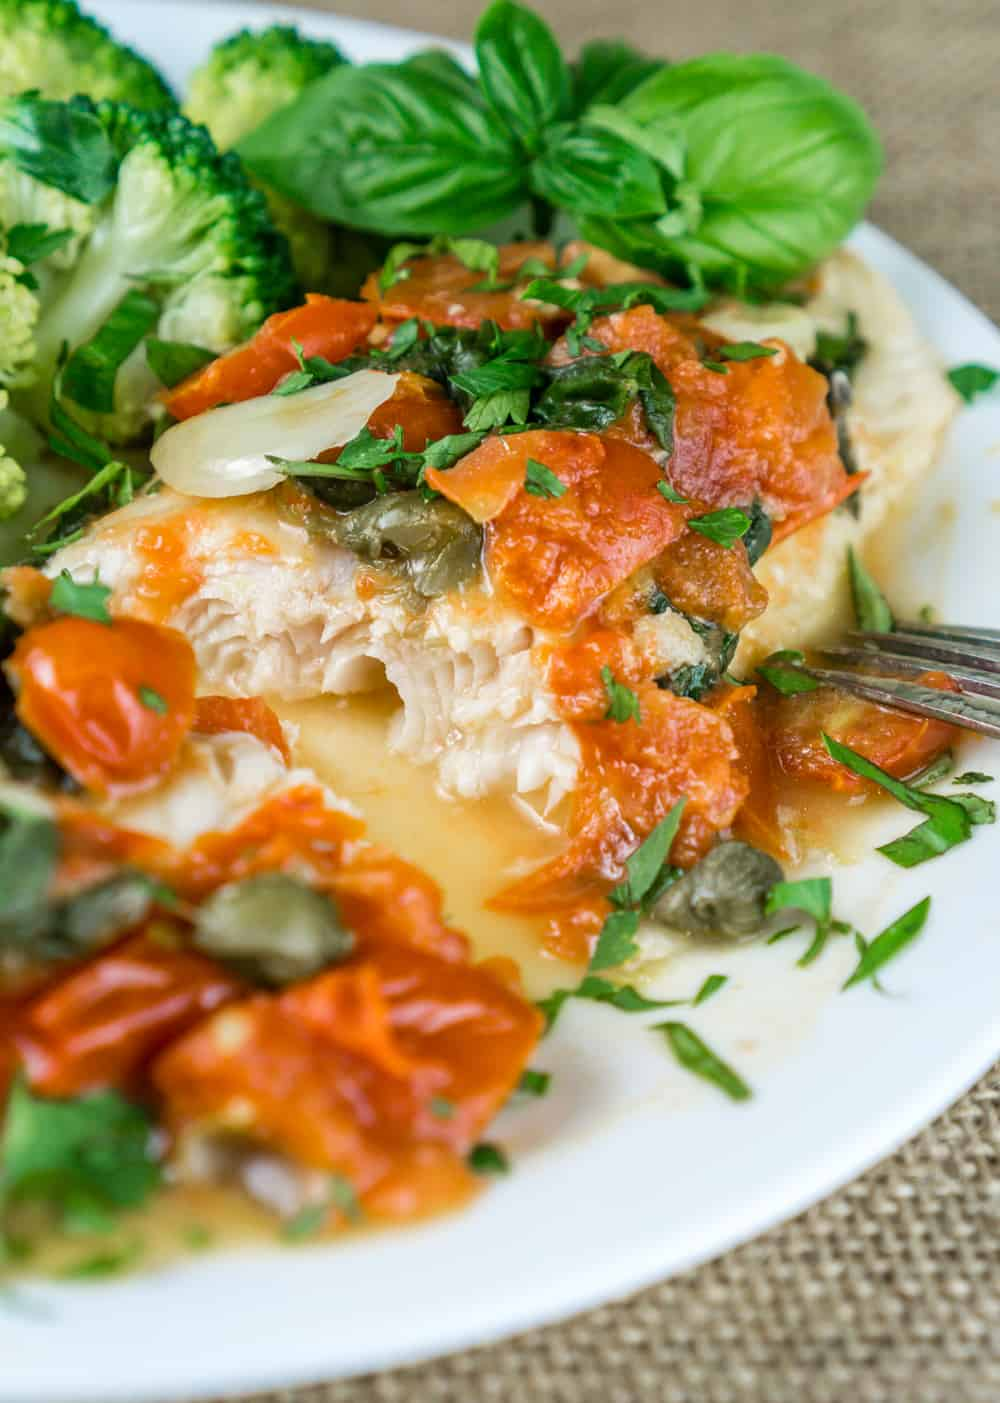 A truly wonderful dinner ready in 20 minutes! Tender flaky Swai Fillets with Tomato Caper Sauce are irresistible, easy to cook, and very healthy. This recipe is great way to use seasonal produce and herbs. From https://www.babaganosh.org